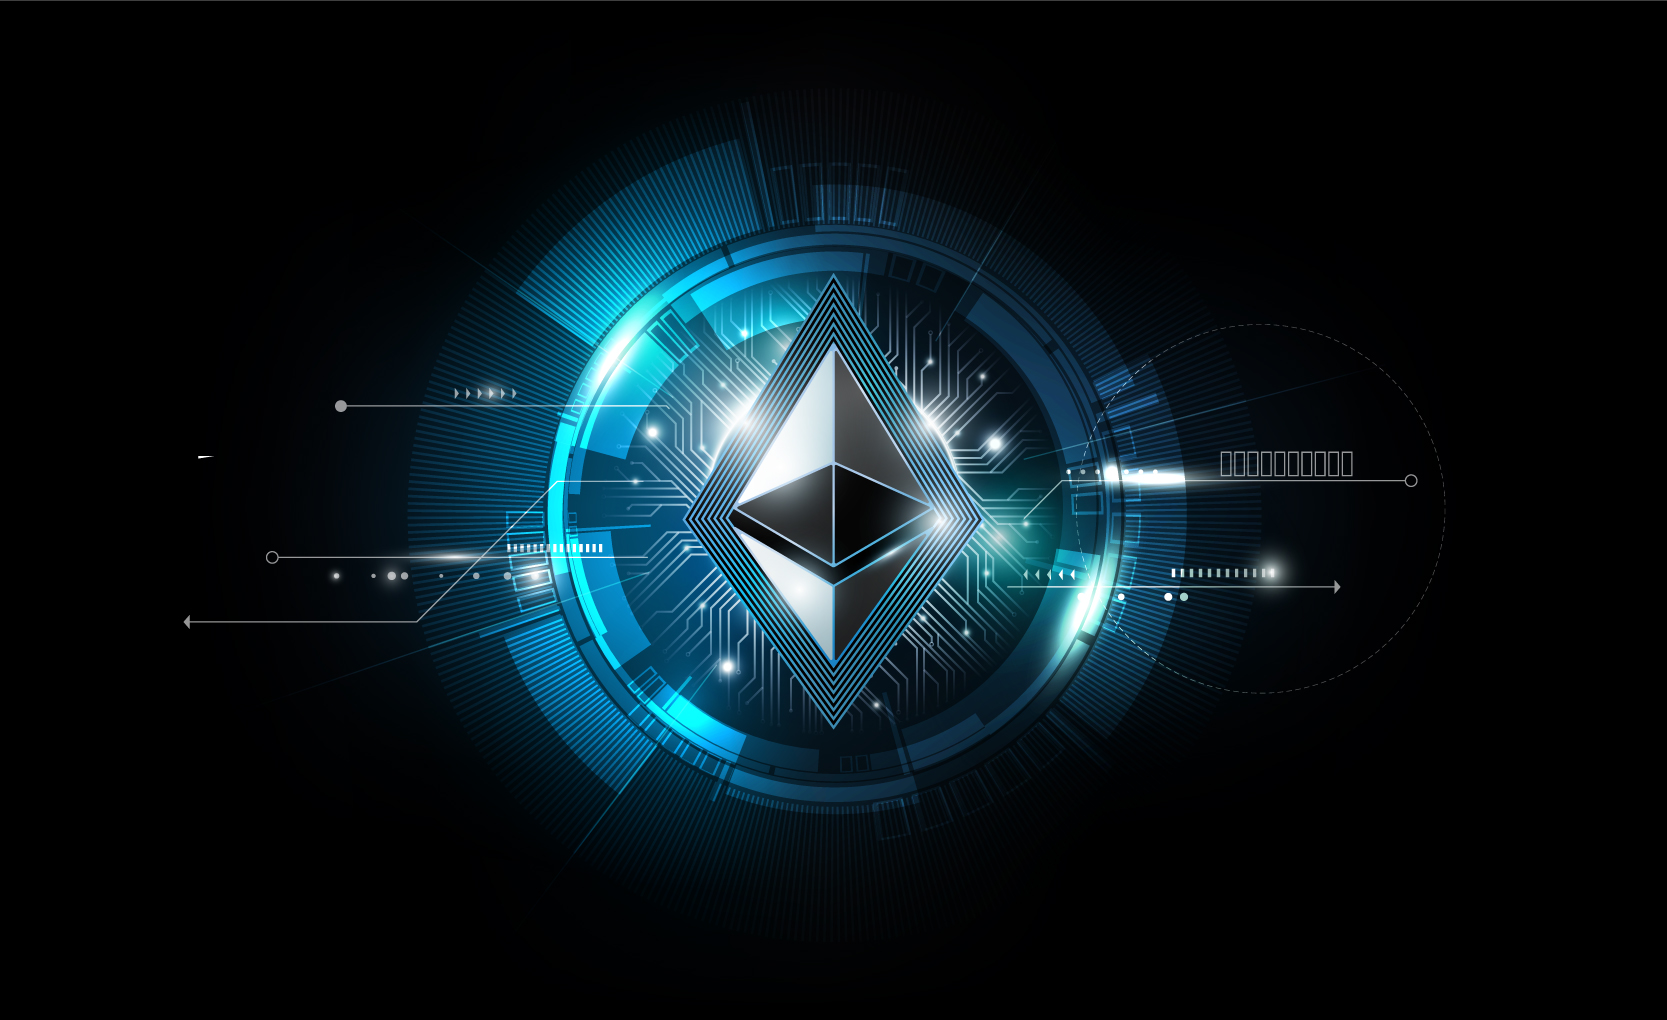 Eth2 staking contract ranks as single-largest Ether hodler with $21.5B